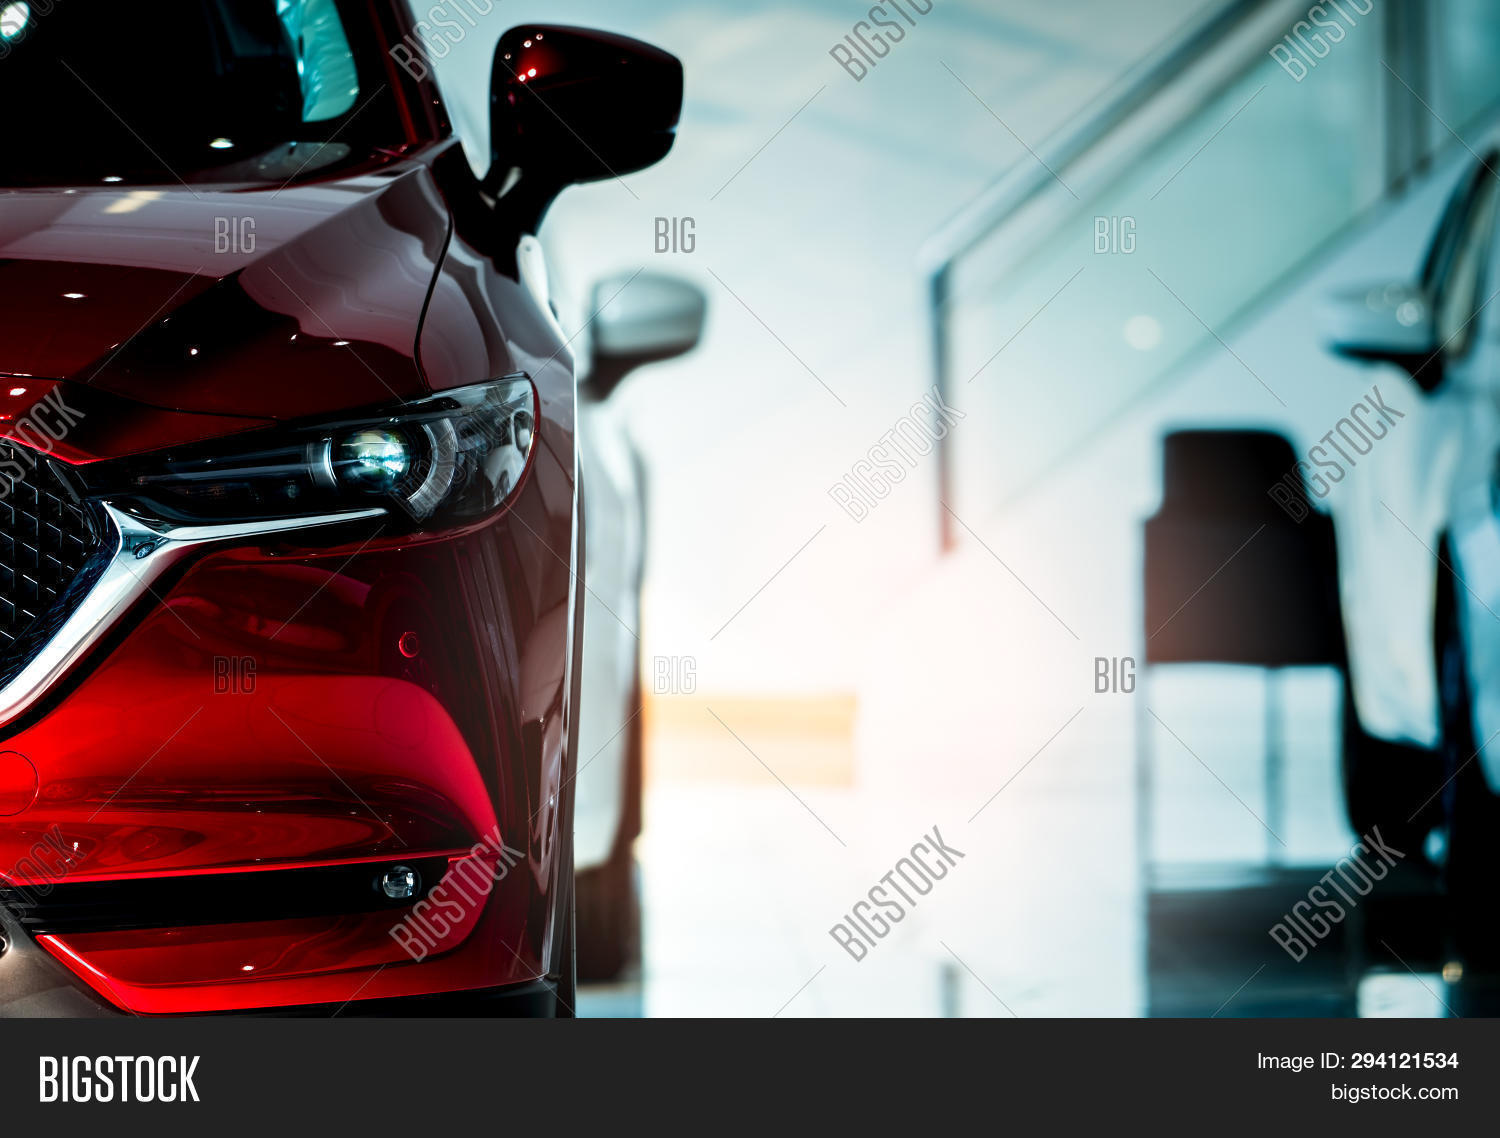 abstract,auto,automobile,automotive,background,beautiful,blur,business,car,compact,dealer,dealership,drive,electric,energy,engine,ev,glass,headlamp,hybrid,industrial,industry,interior,lease,light,luxury,machine,manufacturing,market,modern,motor,new,parked,power,red,rental,retail,room,safety,service,shiny,show,showroom,stock,store,technology,transport,transportation,vehicle,white